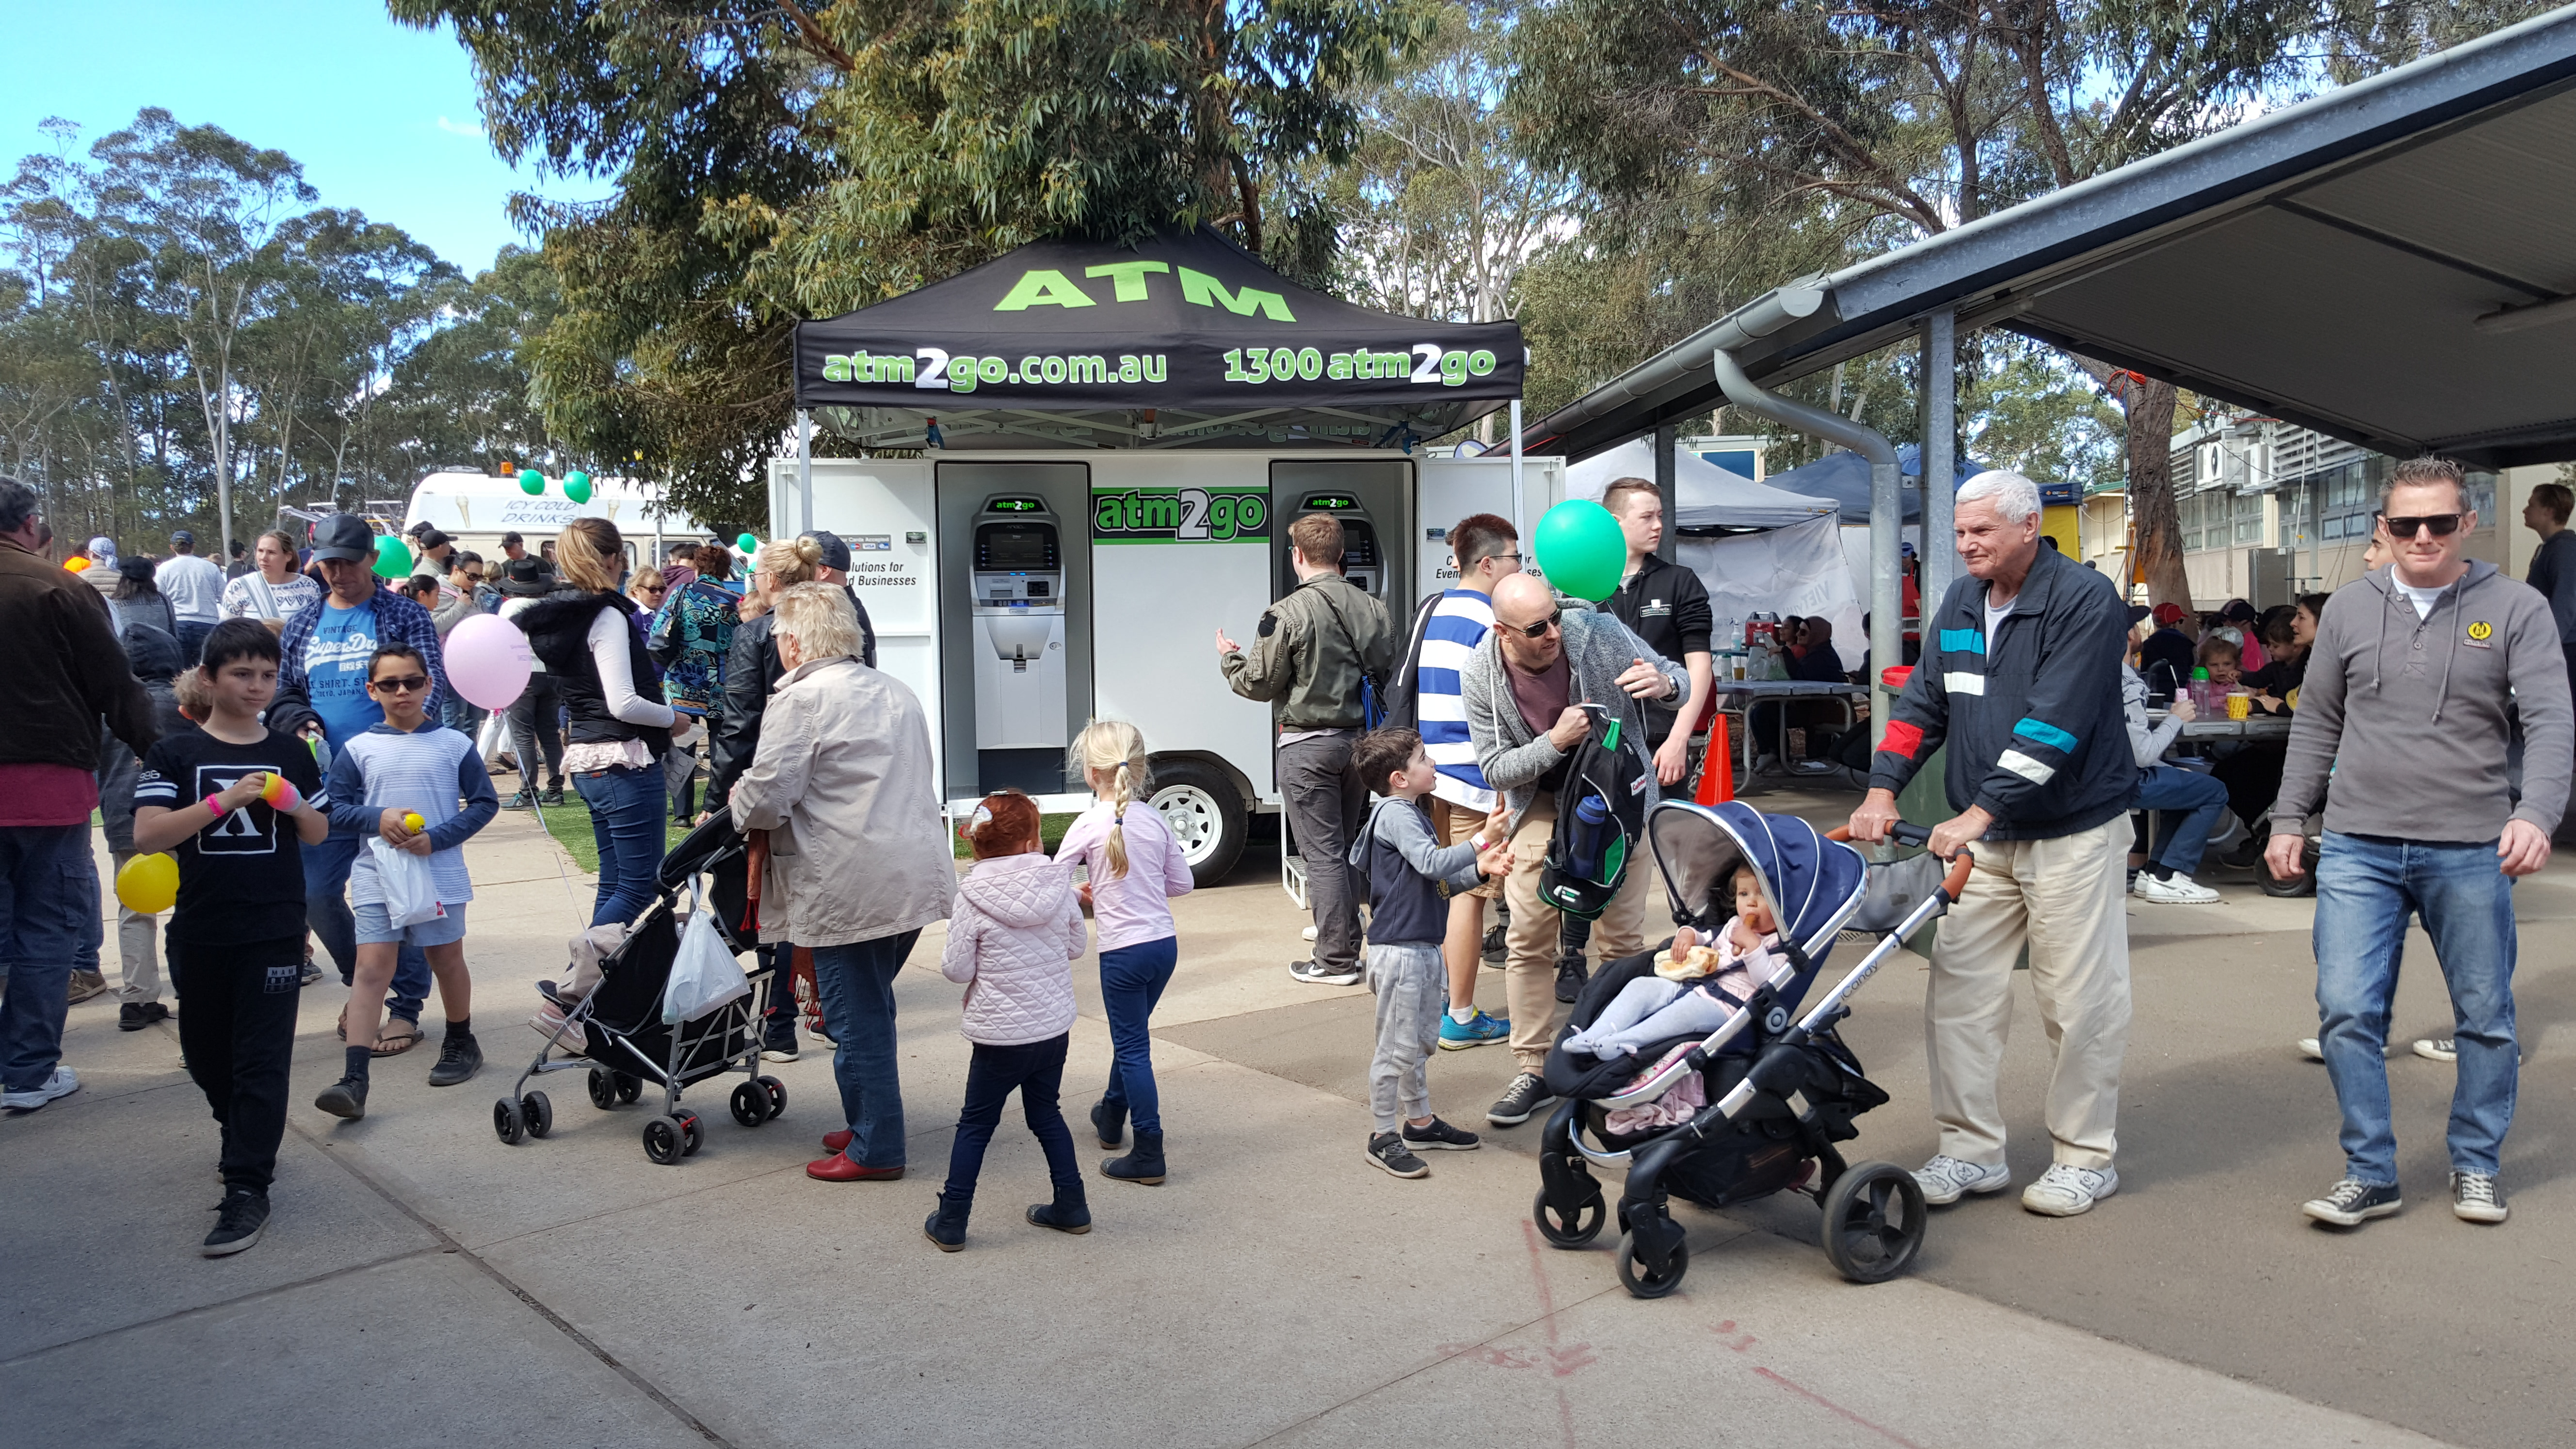 Mobile ATM Franchise opportunity available in Adelaide